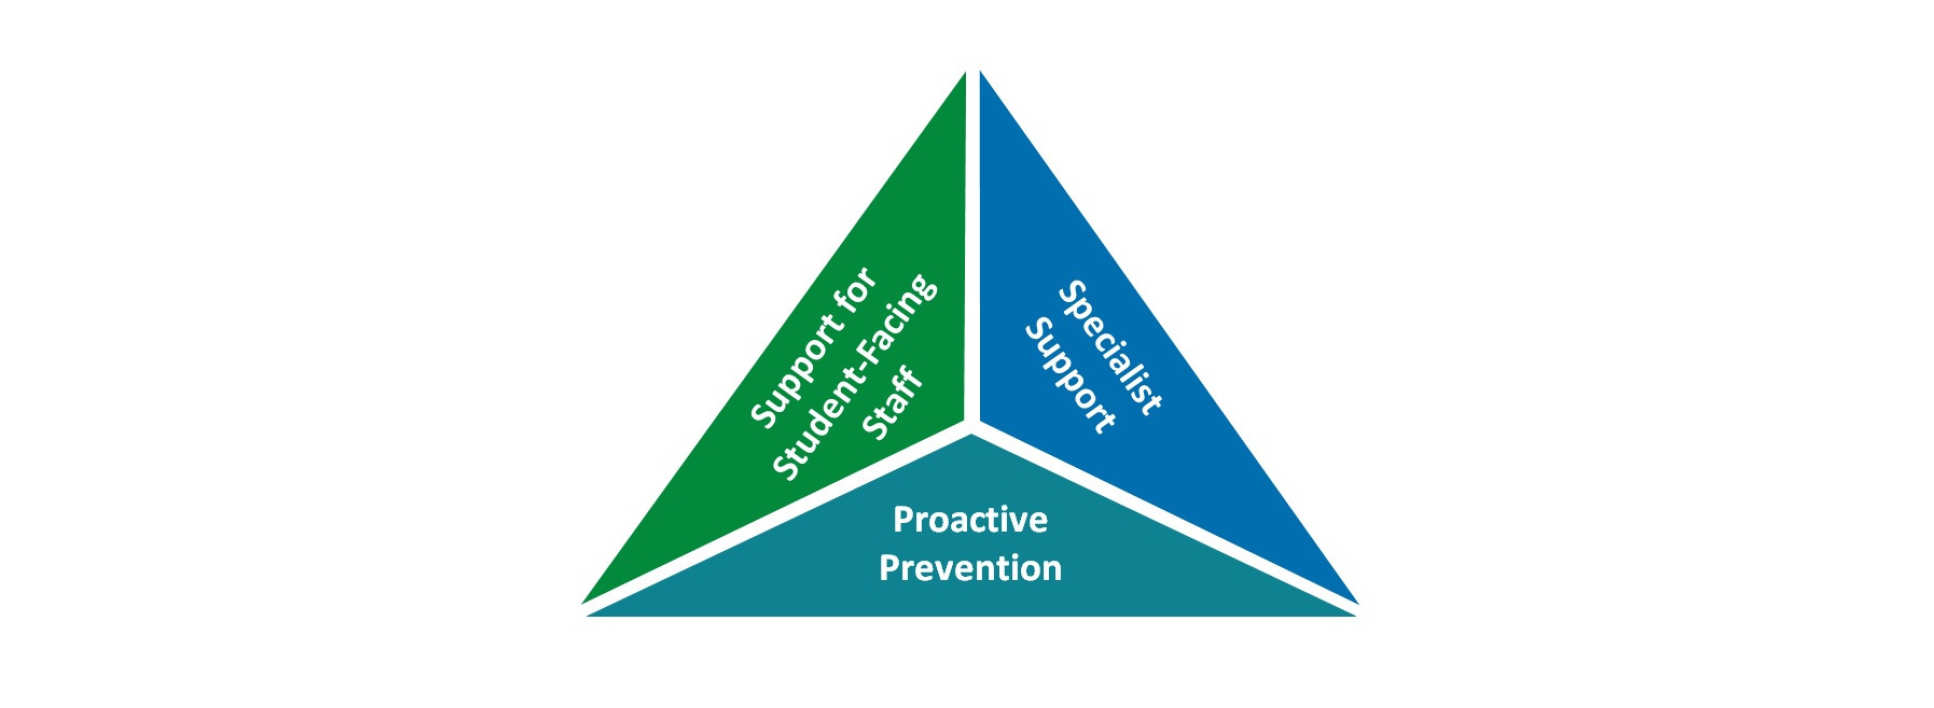 Wellbeing Pyramid - Support for student-facing staff, specialist support, and proactive prevention.